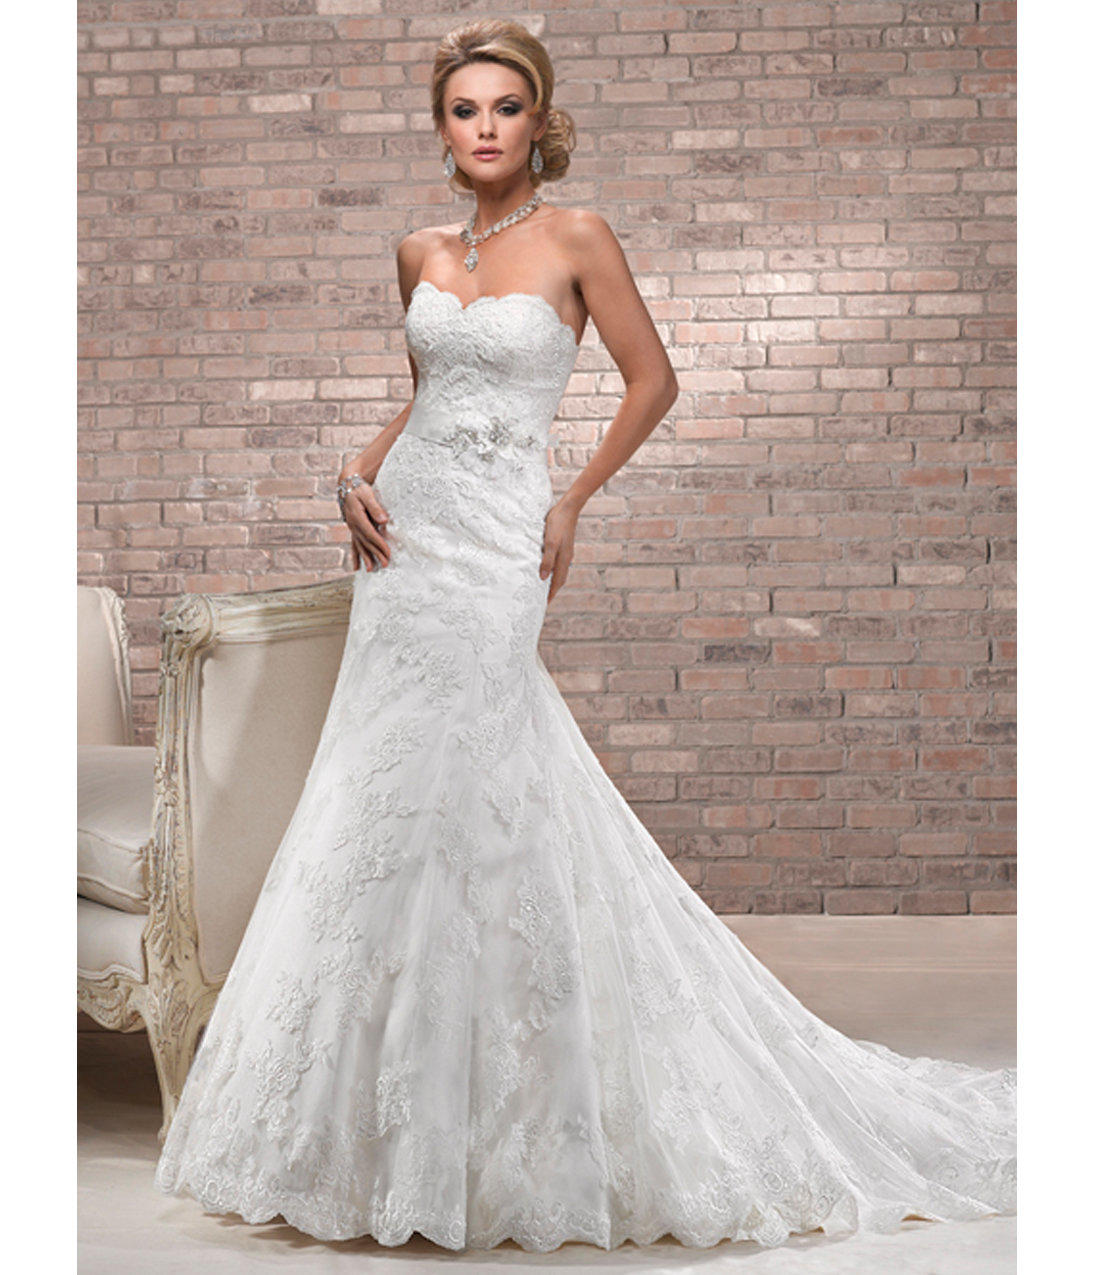 Maggie Sottero Spring 2013 Alana Ivory from Unique